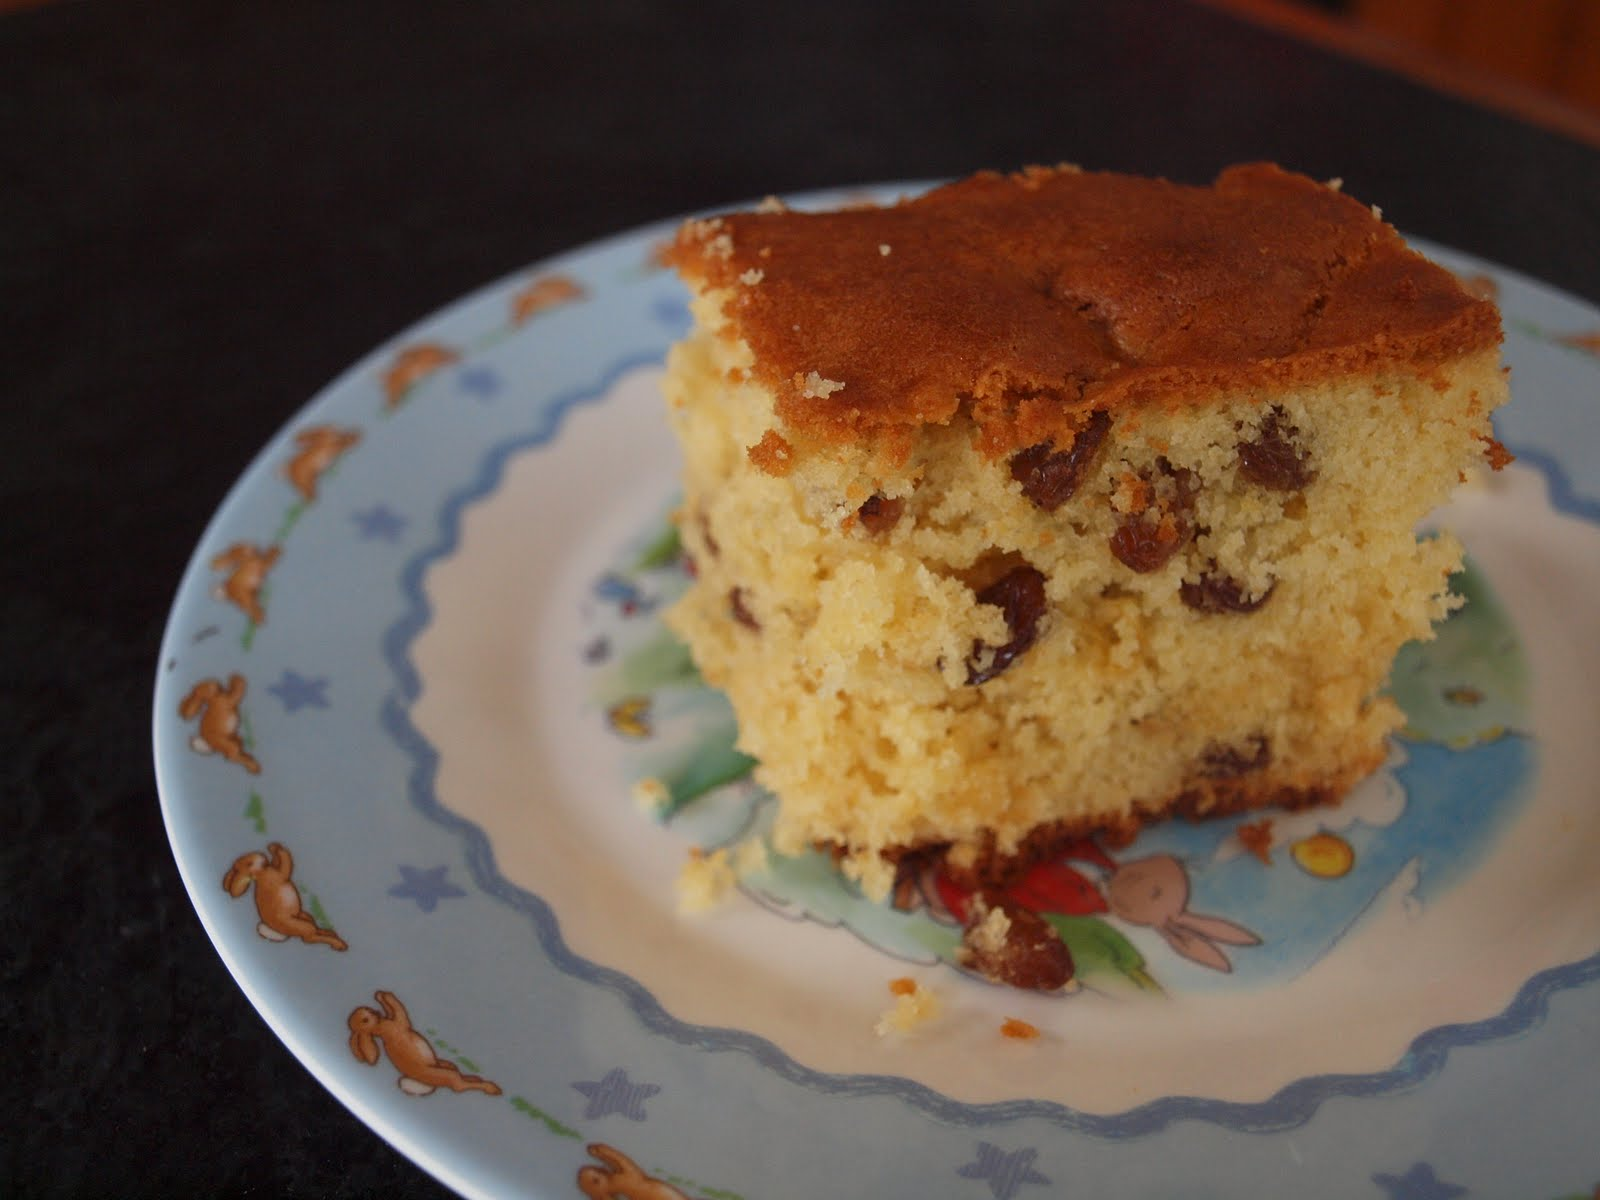 Old-Fashioned Sultana Cake